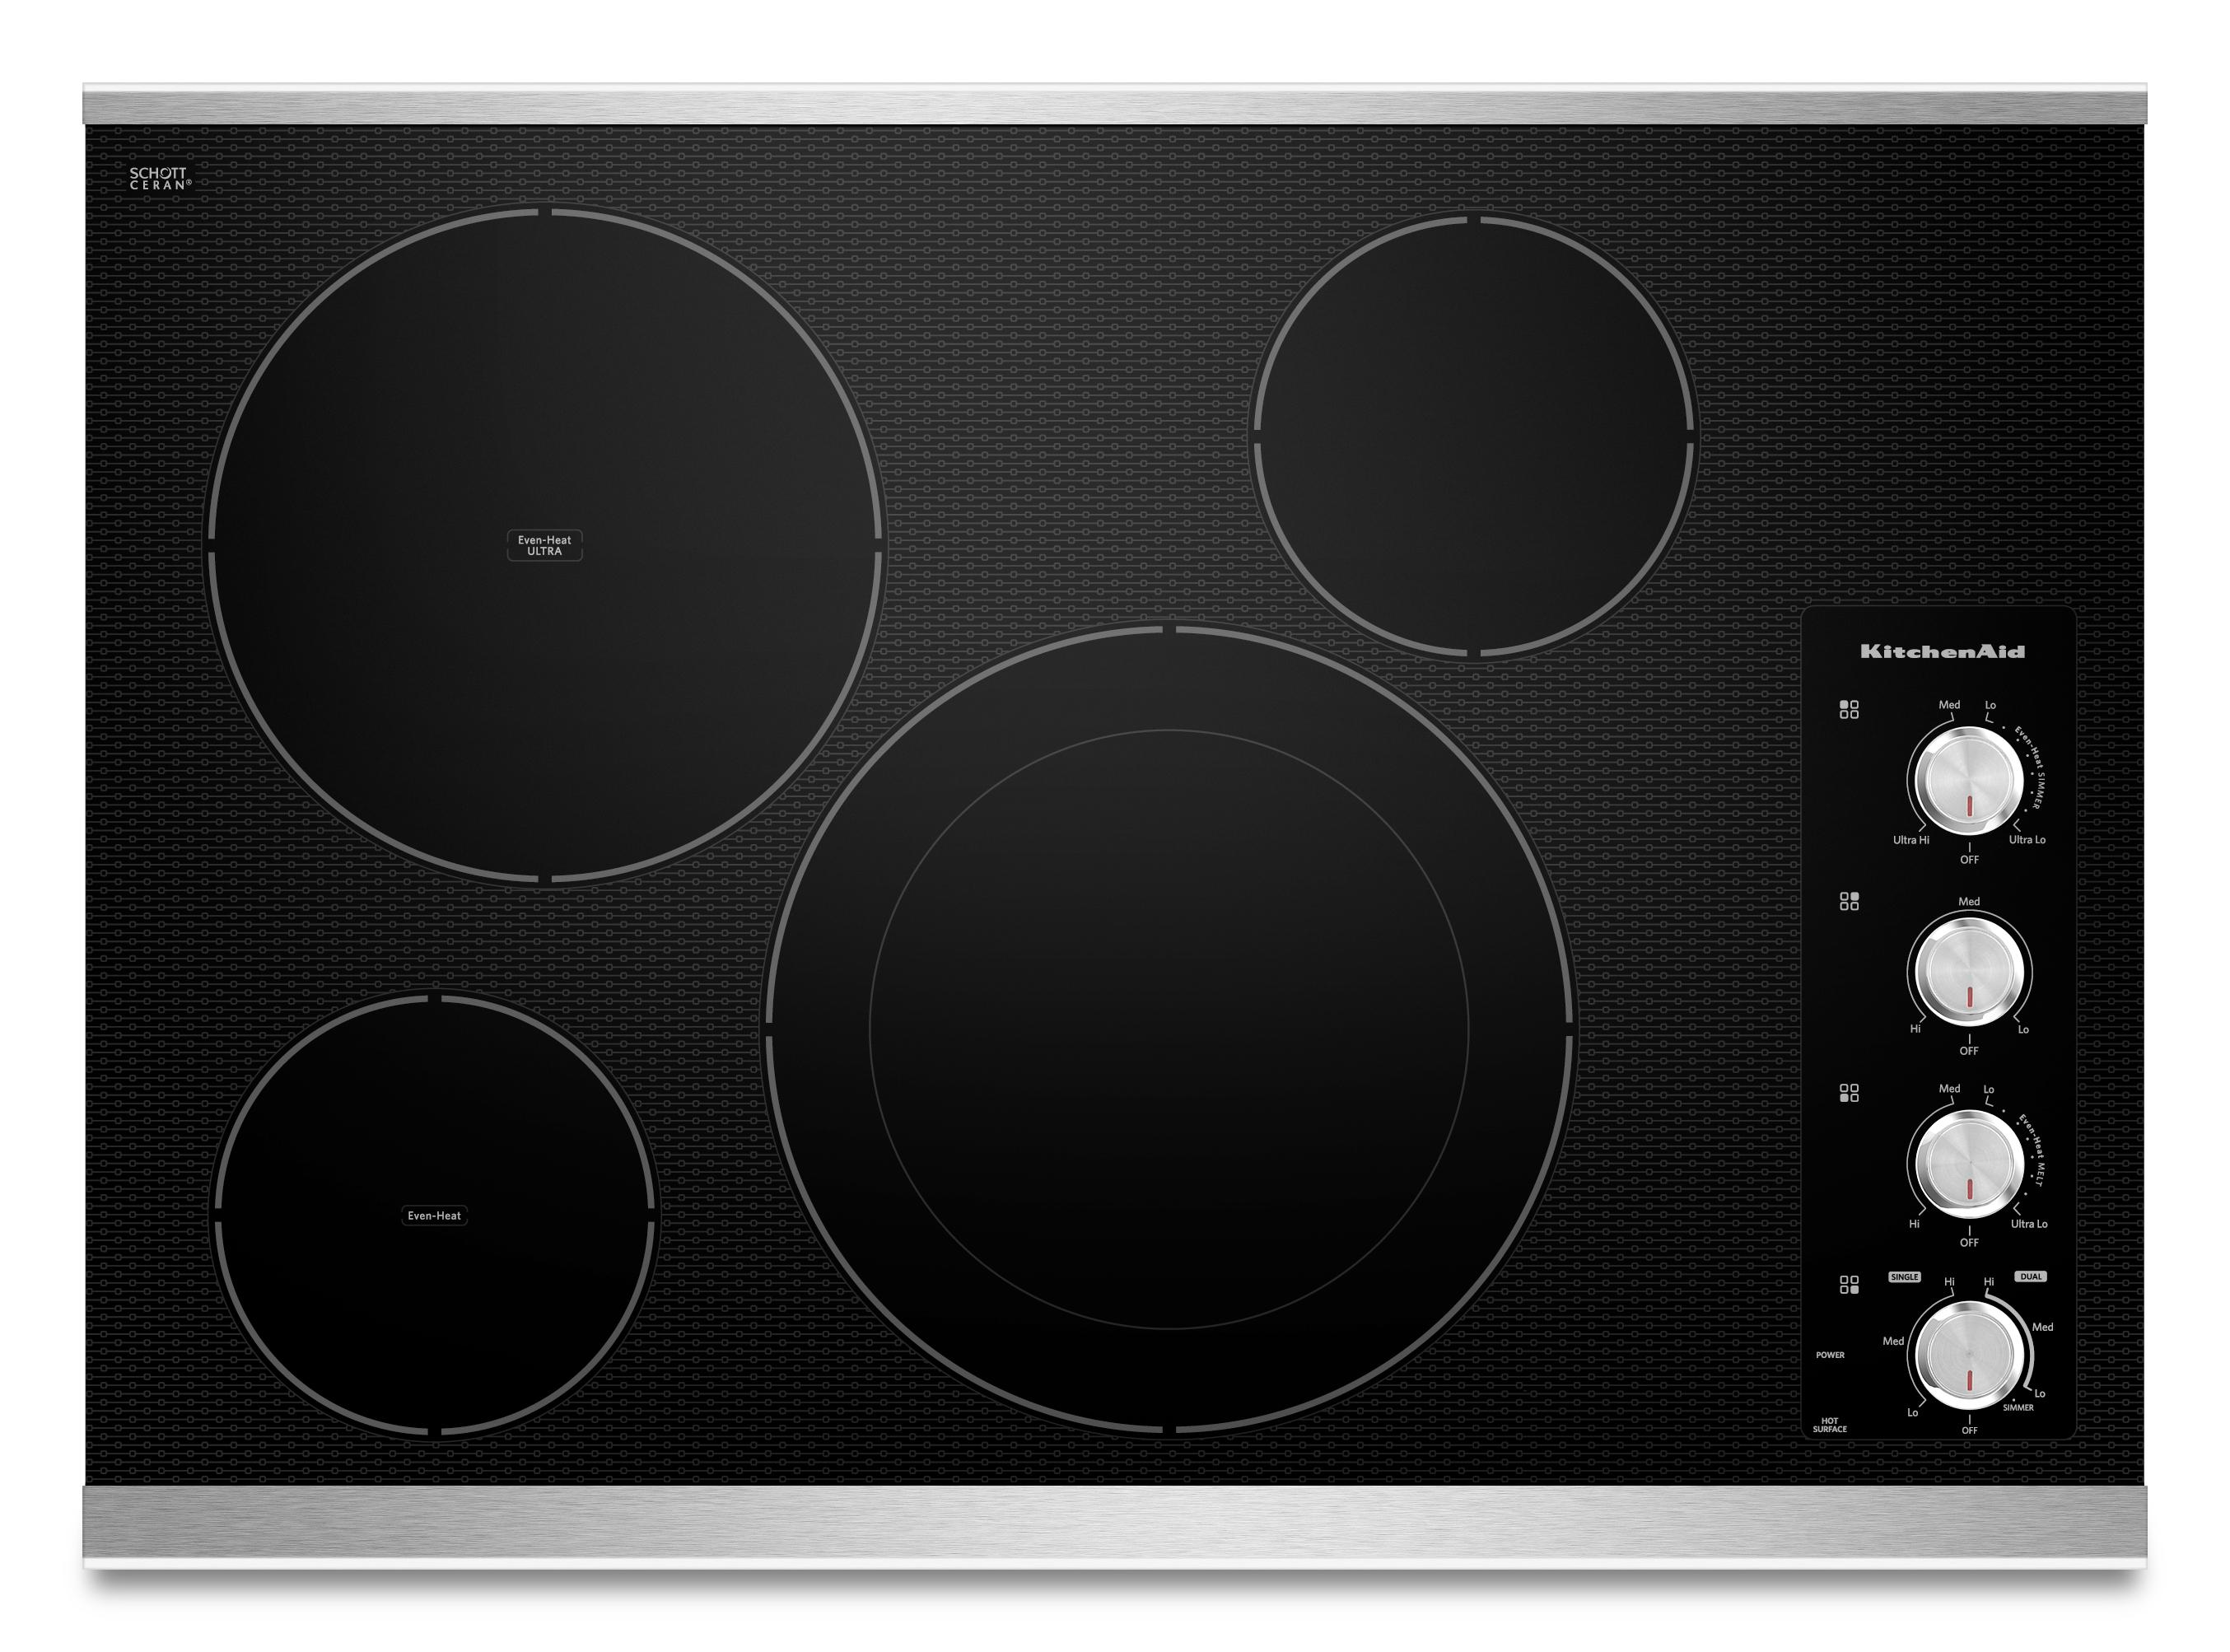 KitchenAid Electric Cooktops - Kitchenaid Built-In Electric Cooktop - Item Number: KECC604BSS